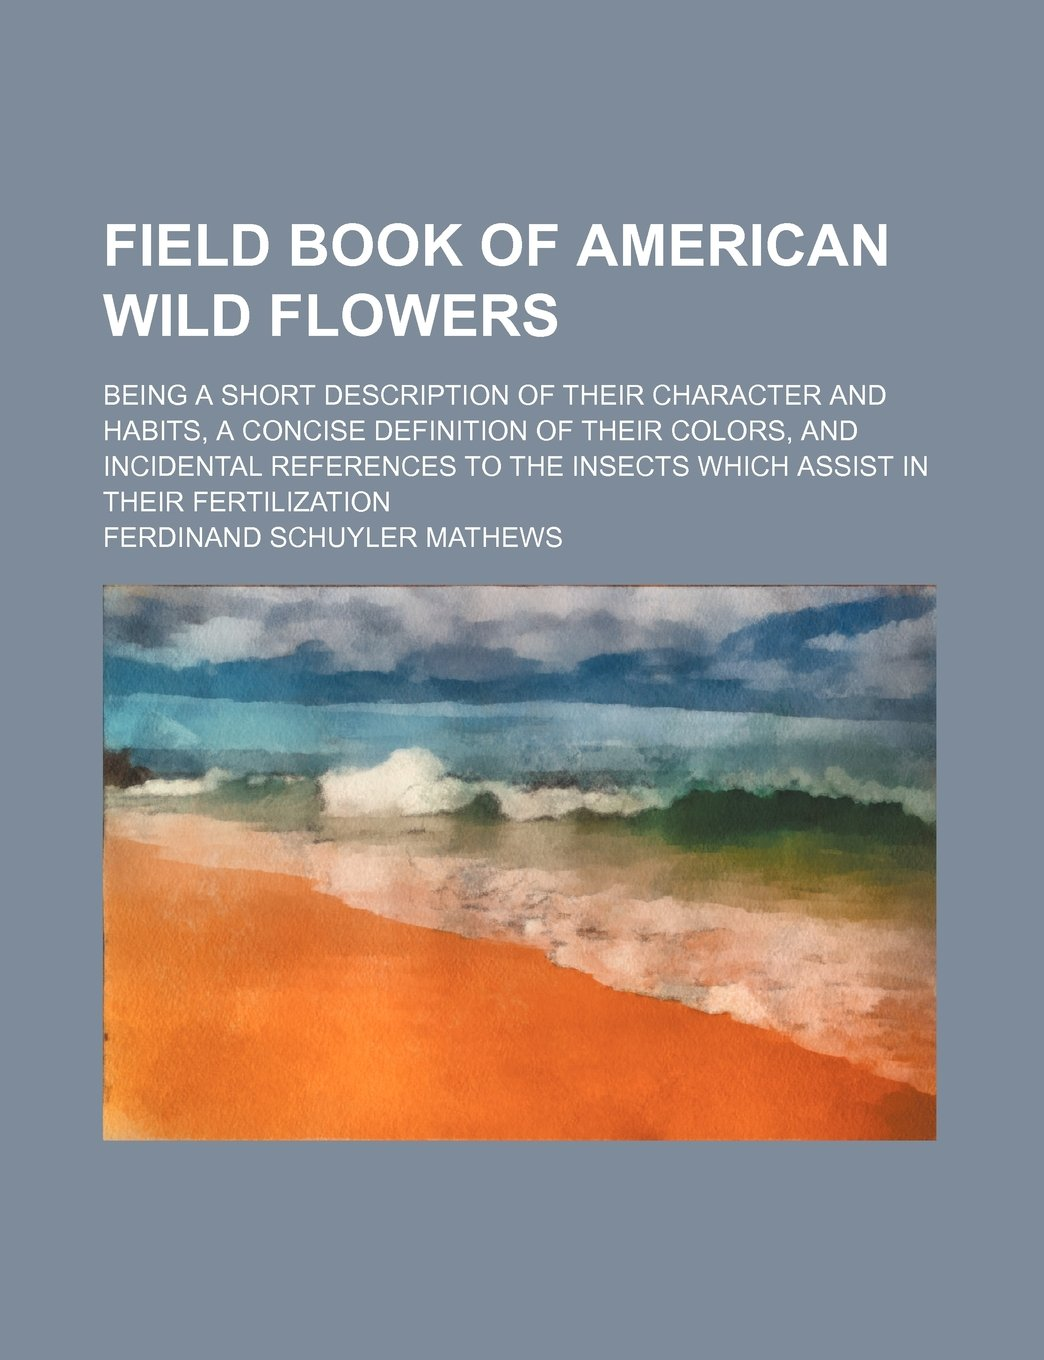 Field book of American wild flowers; being a short description of their character and habits, a concise definition of their colors, and incidental ... insects which assist in their fertilization PDF